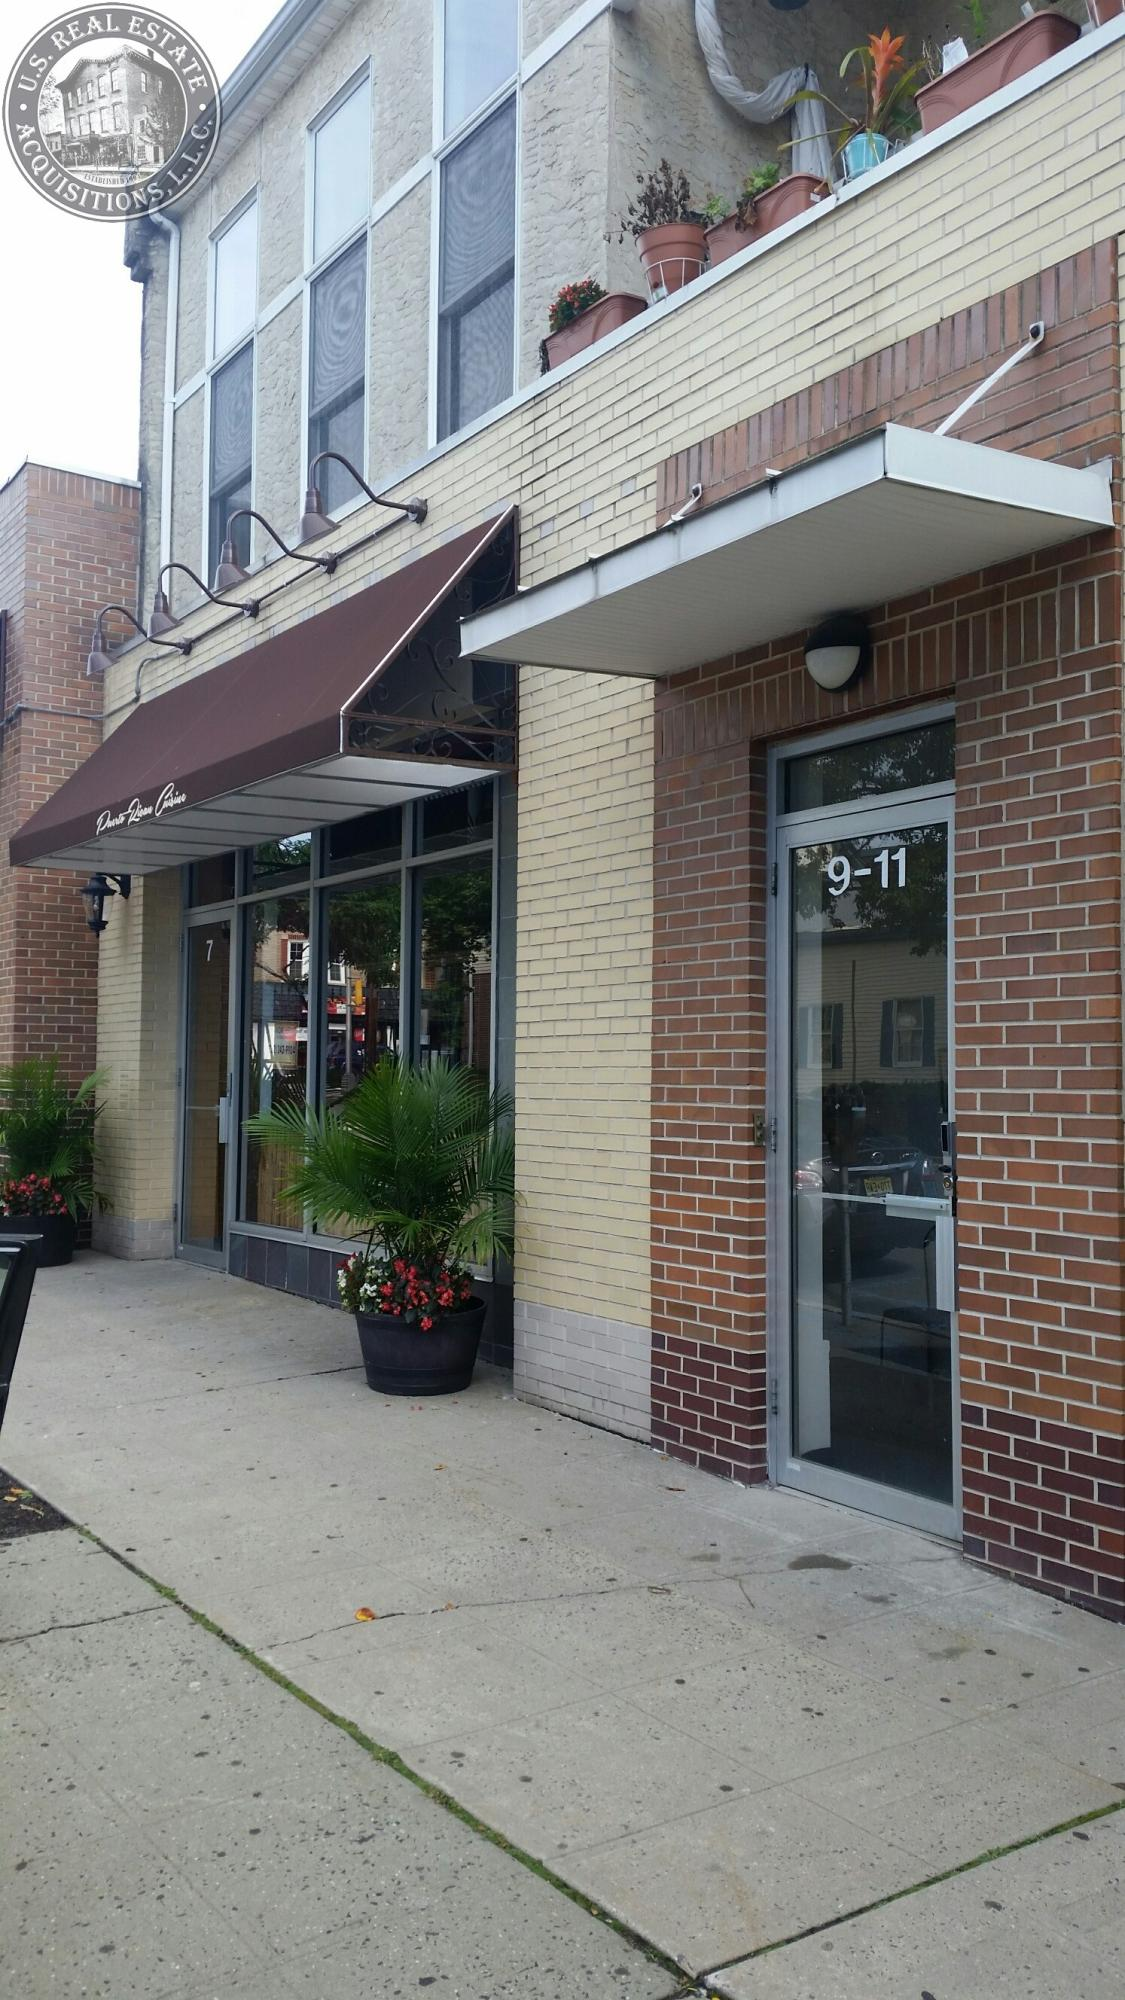 413-419 Main Street, 1-23 New St., Metuchen NJ